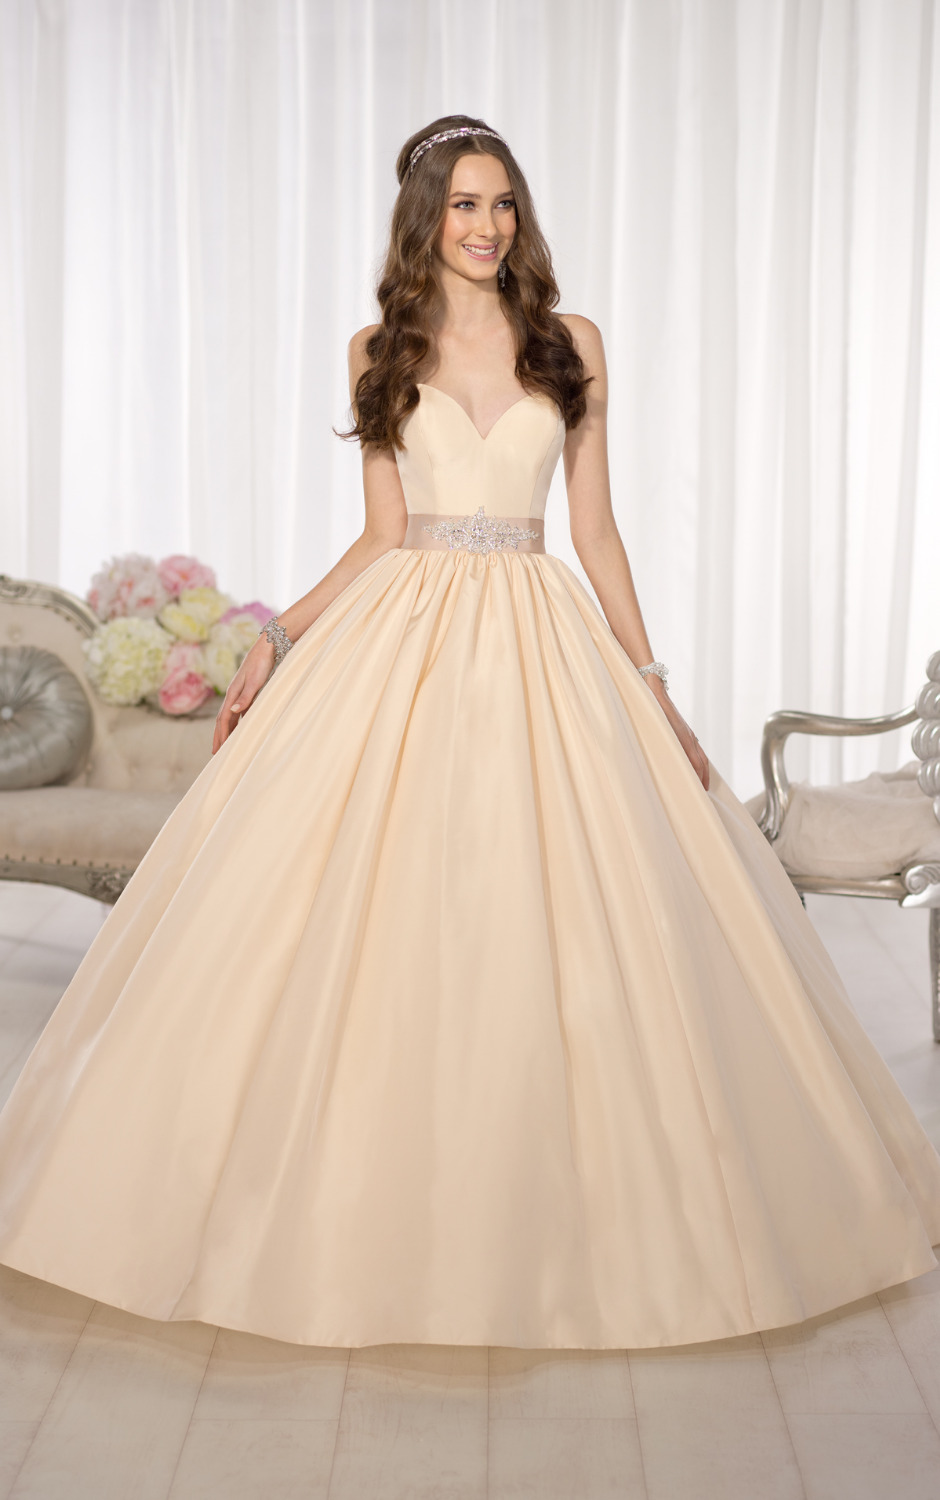 champagne colored dresses for bridesmaids champagne colored wedding dresses Images Of Champagne Long Dress The Fashions Paradise